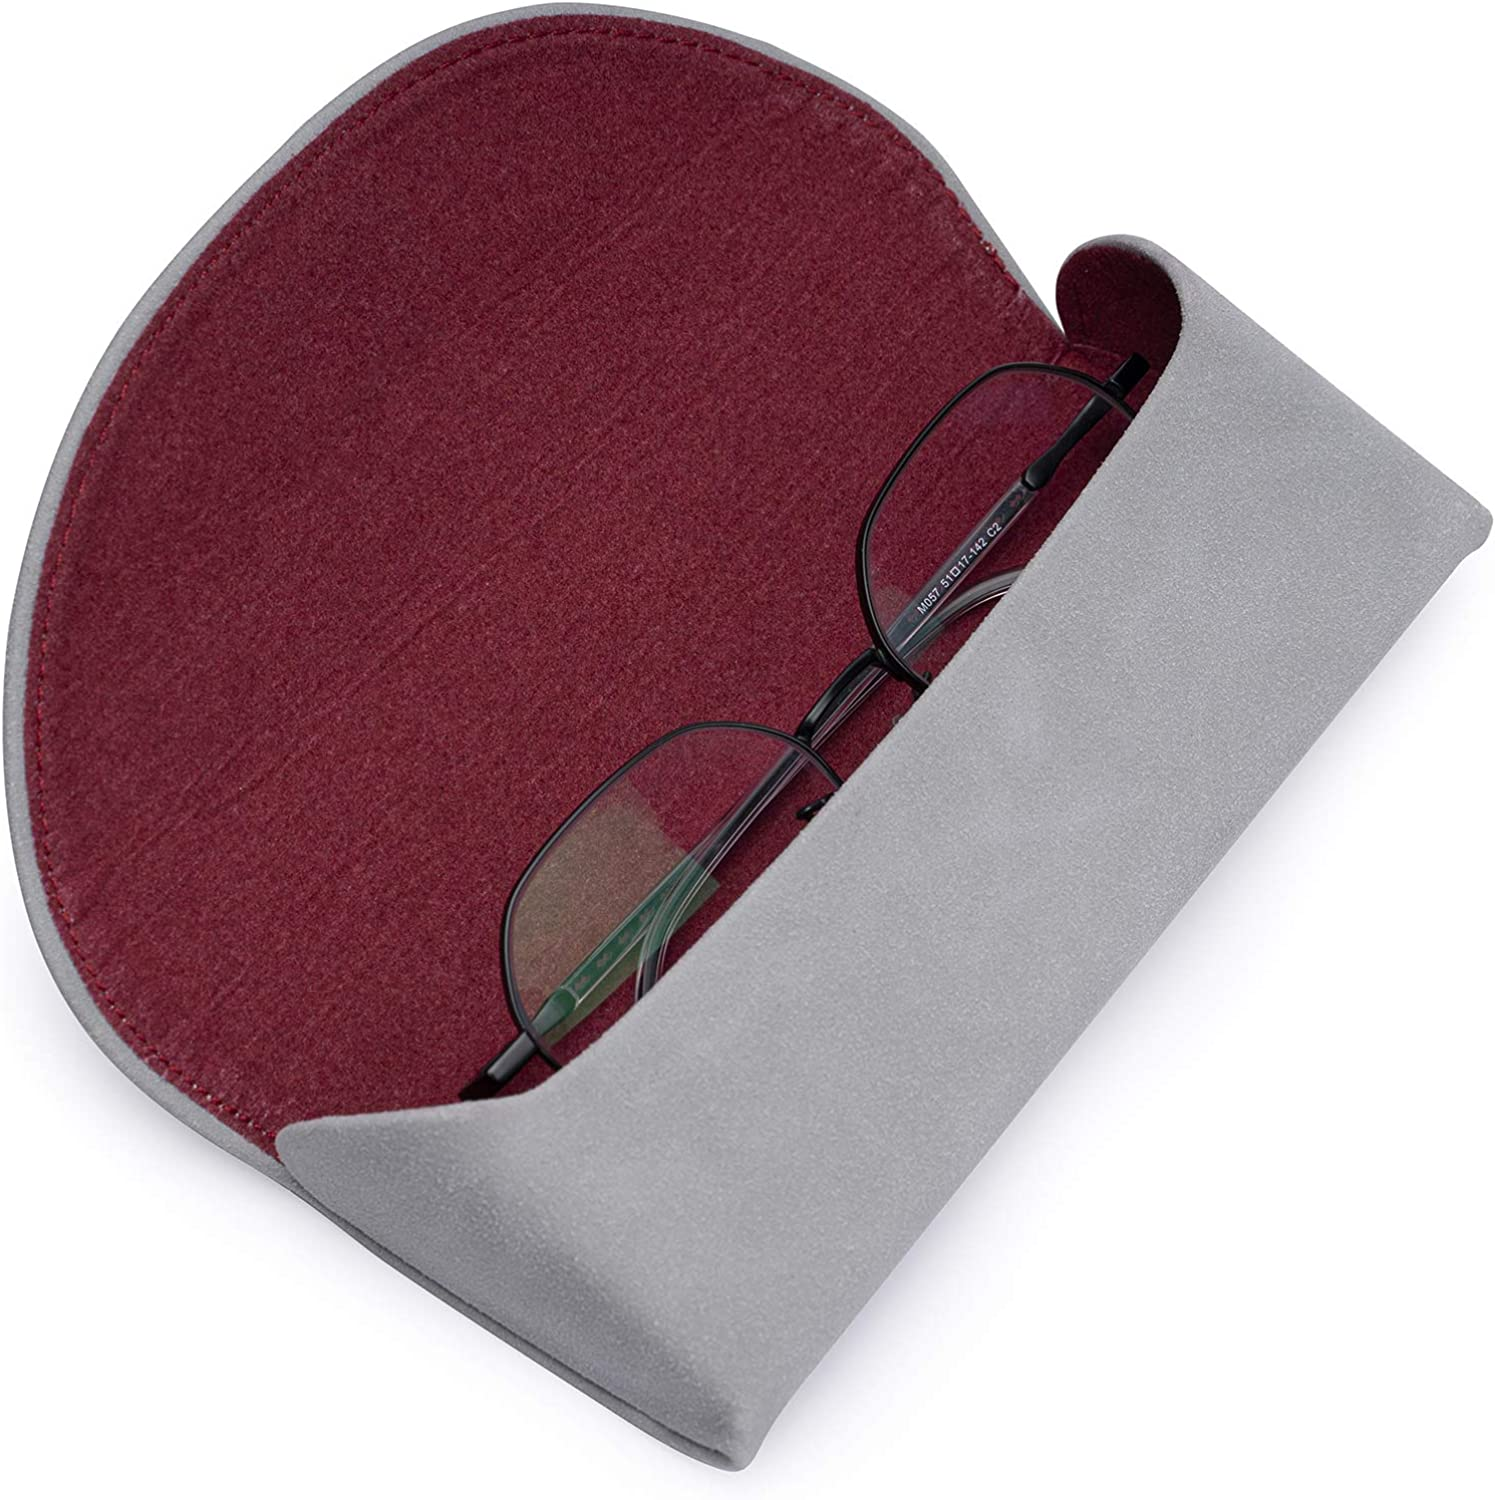 Protective Soft Leather Case For Eyeglasses,Durable Eyeglasses Case For Men And Women